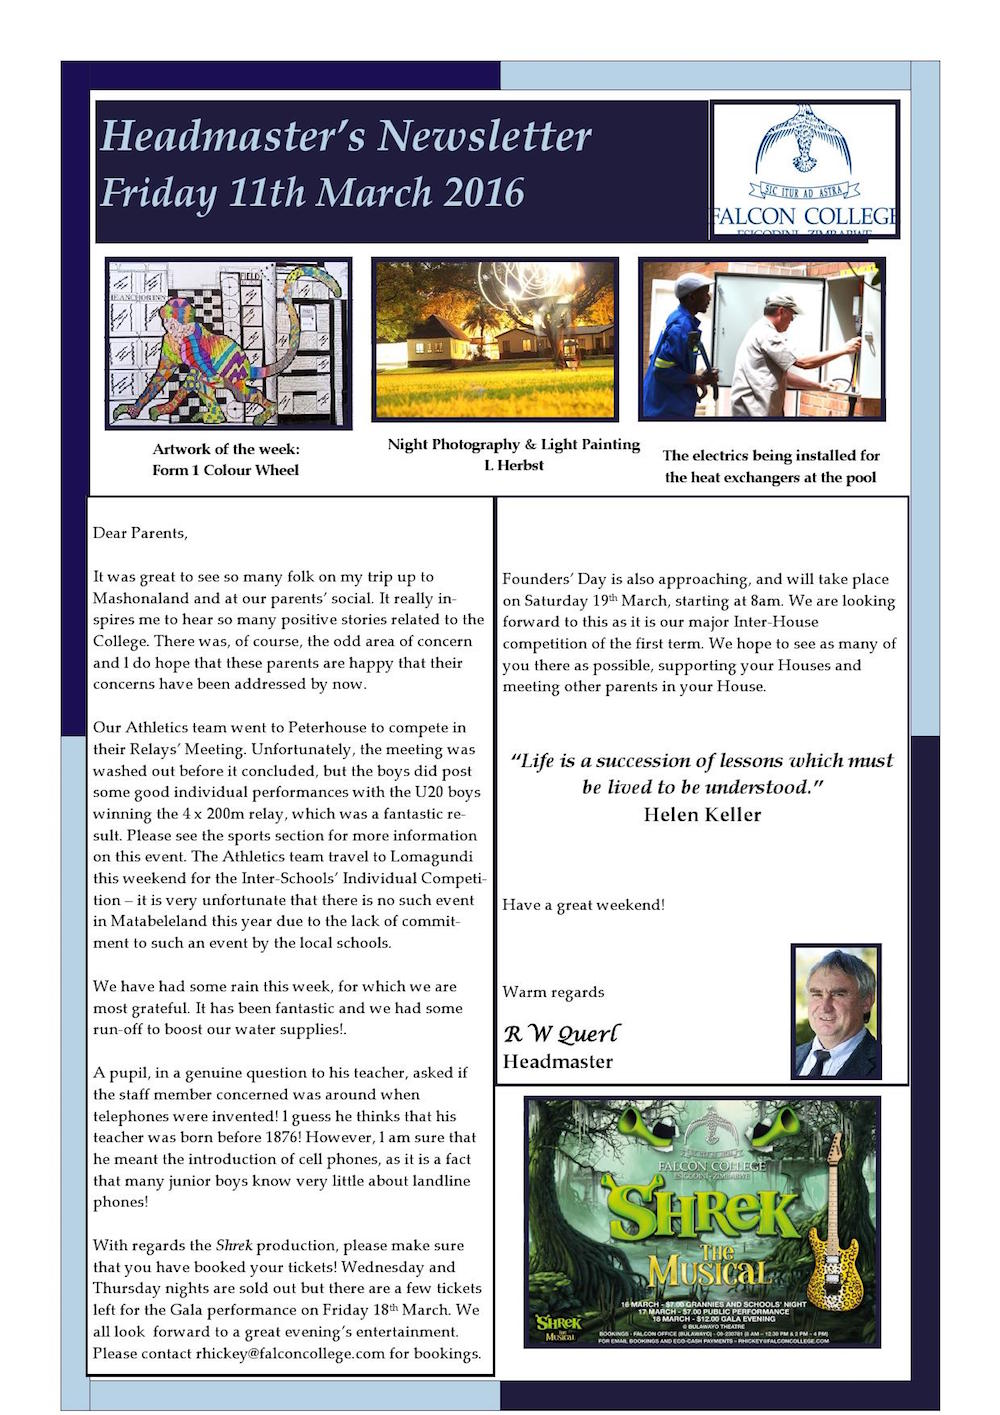 Headmaster's Newsletter Friday 11th March 2016 edited_000001